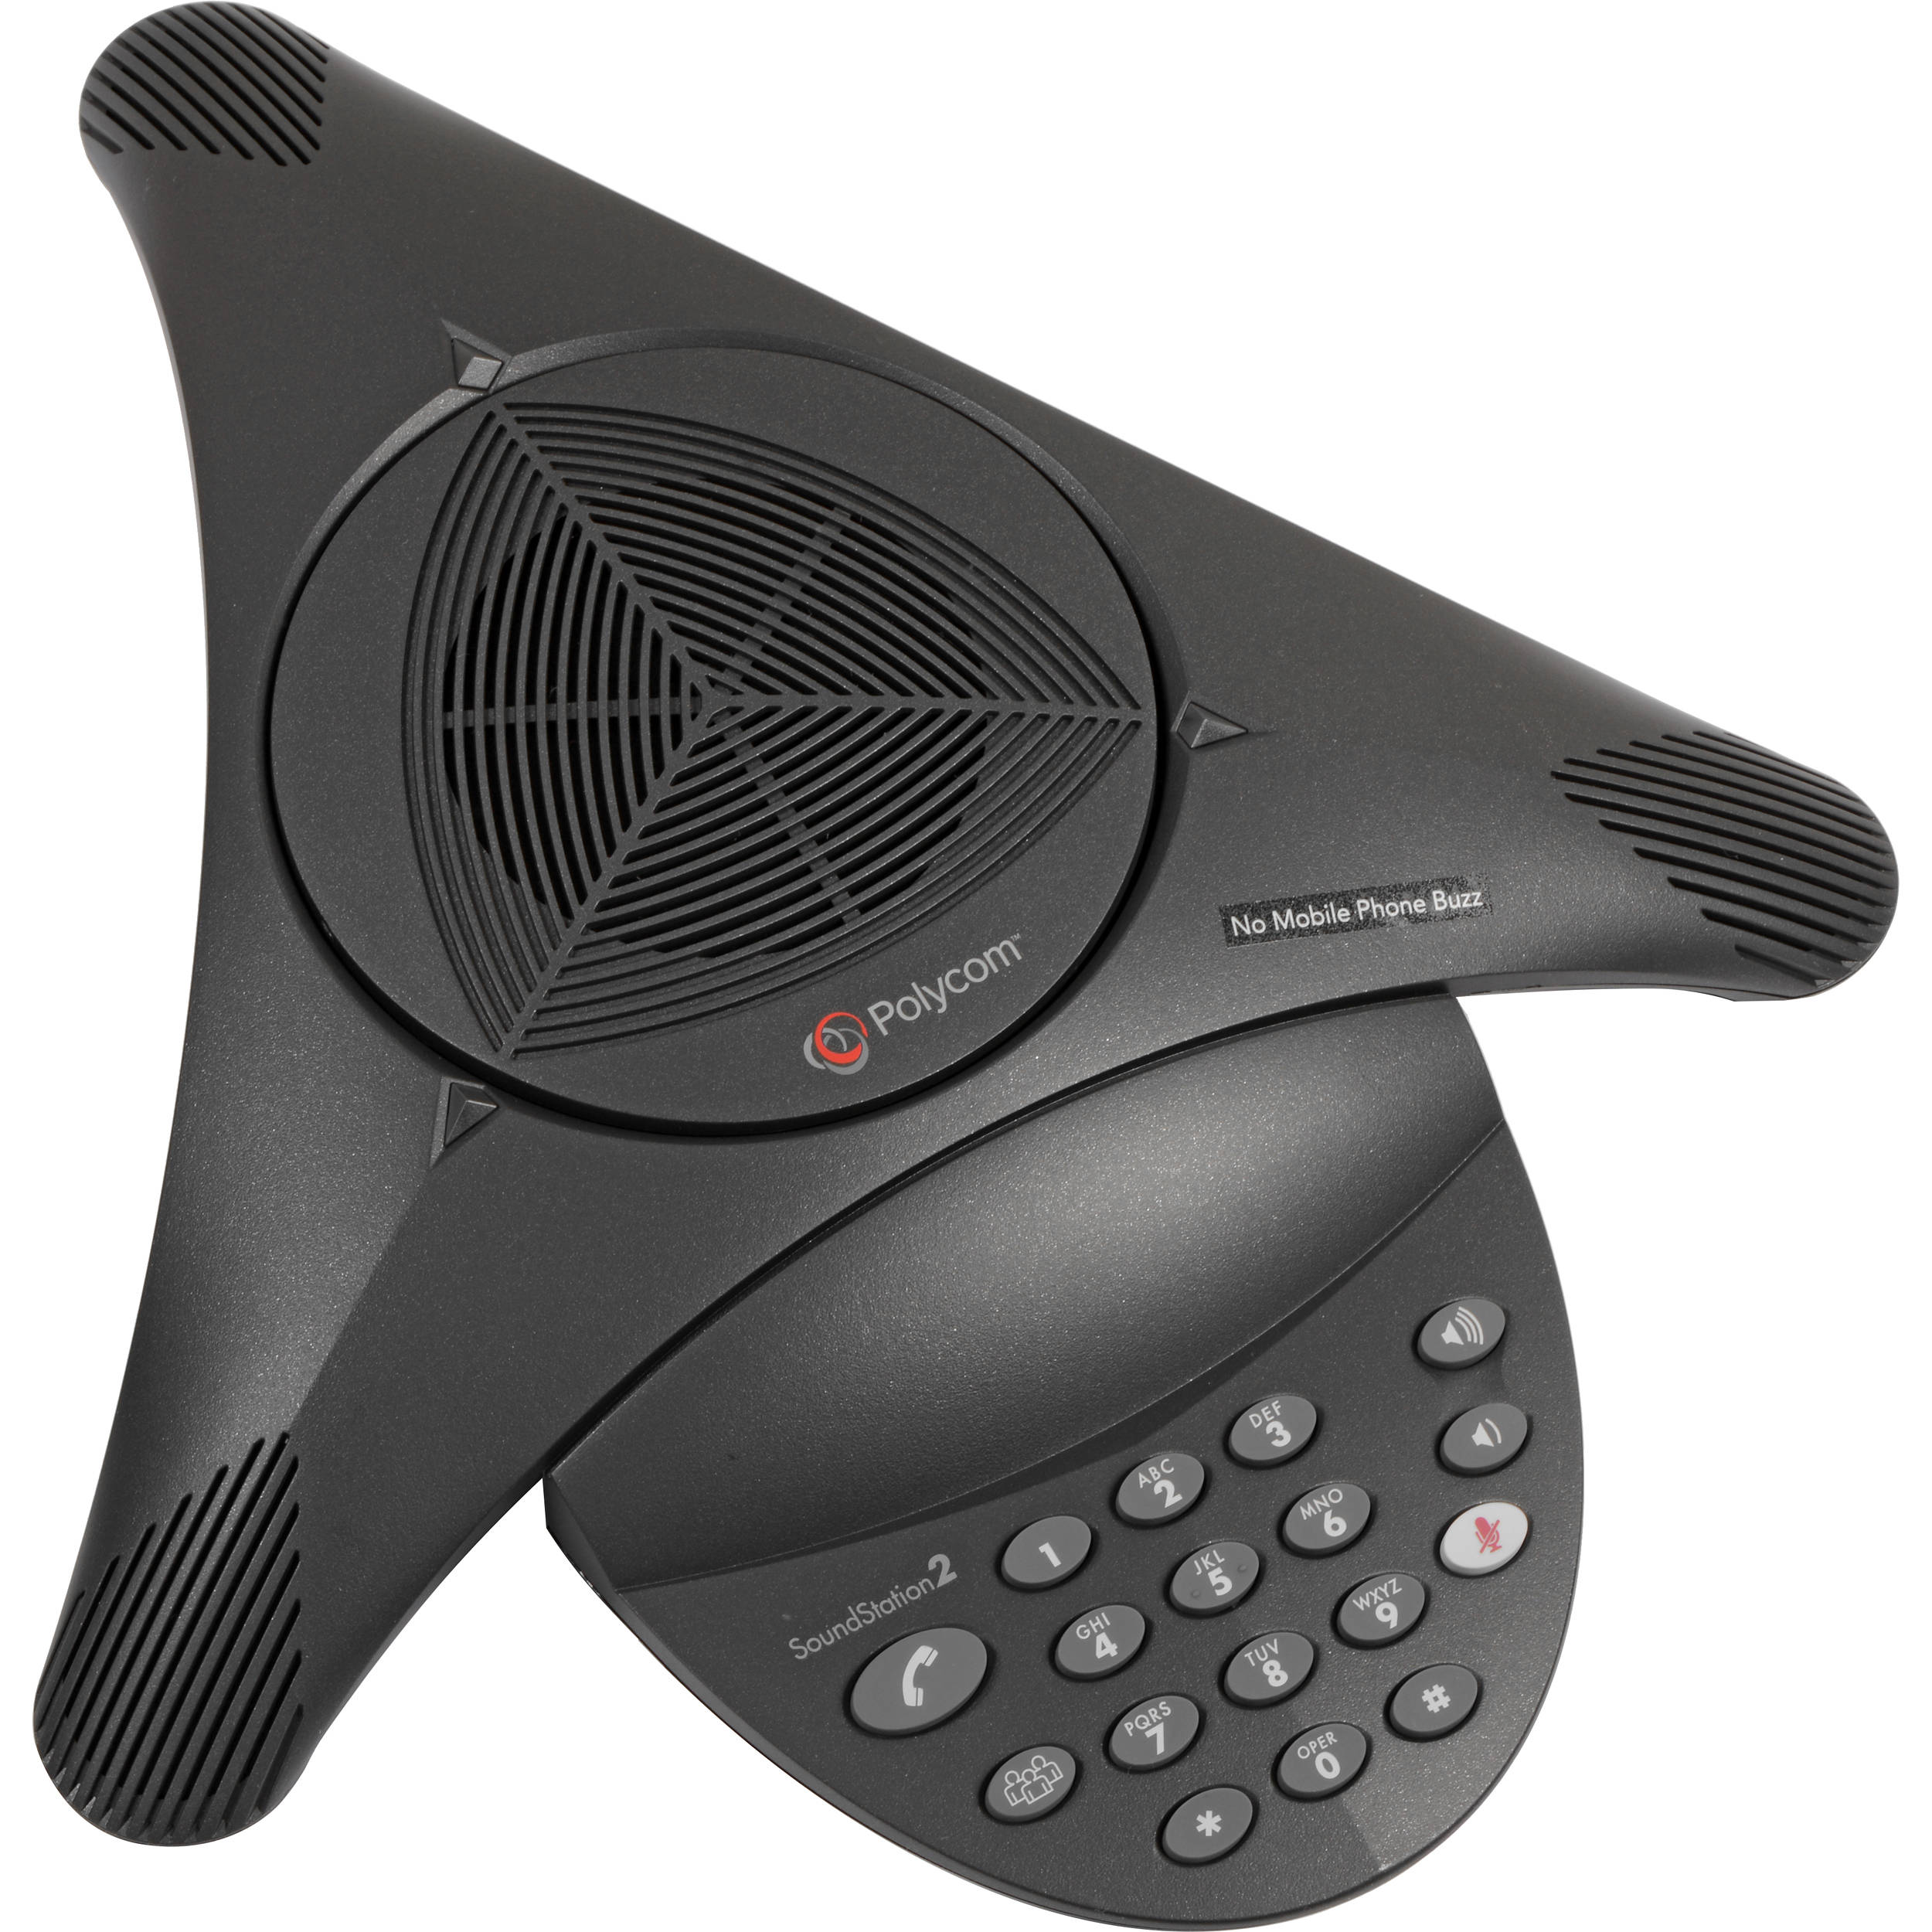 3 of the best conference call telephones conferencecall co uk blog rh conferencecall co uk Polycom SoundStation 2 Conference Phone Polycom SoundStation 2 Conference Phone